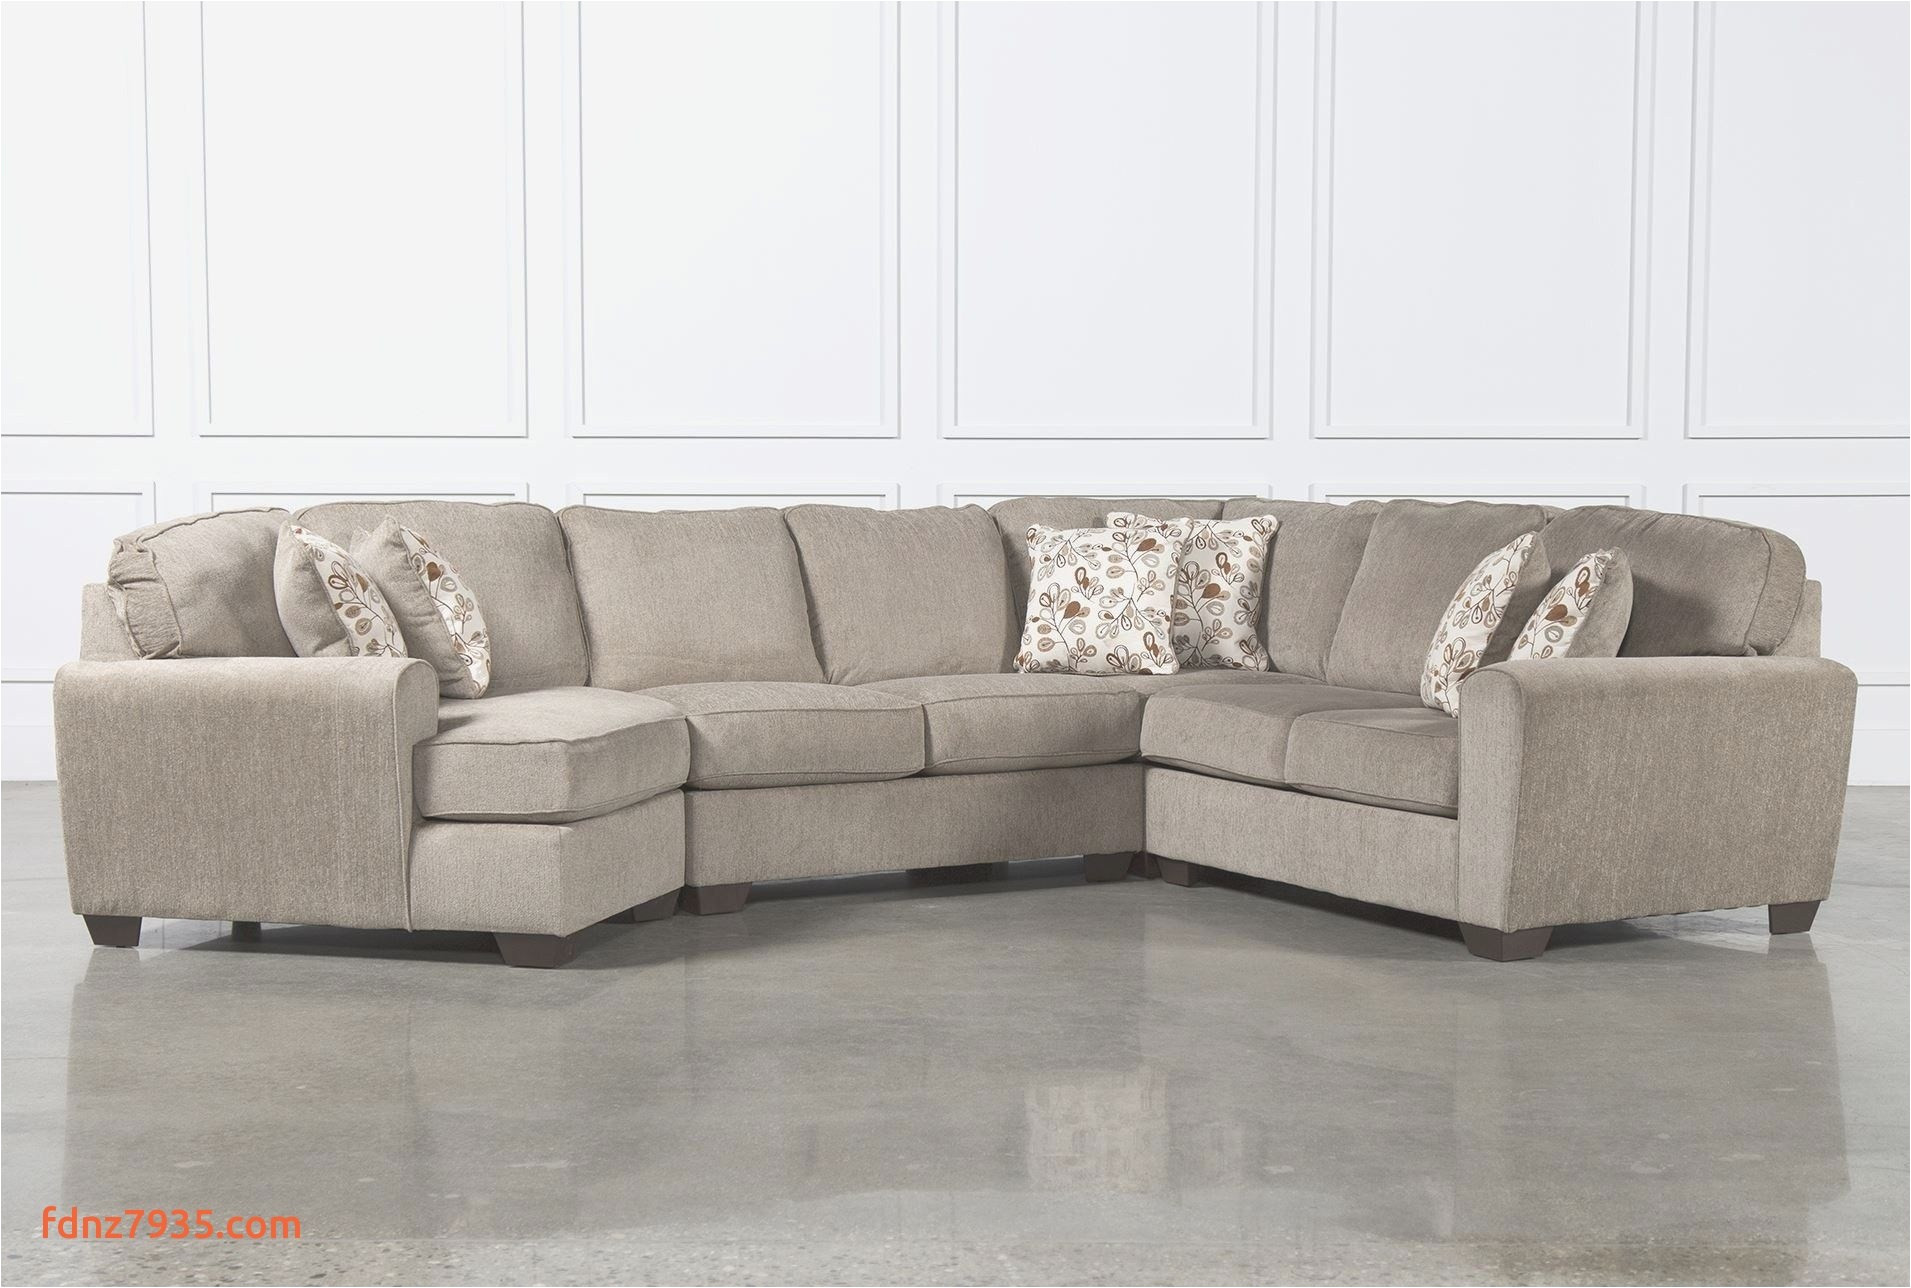 4 piece sectional sofa with chaise 4 piece sectional sofa with chaise flexsteel 4 piece sectional